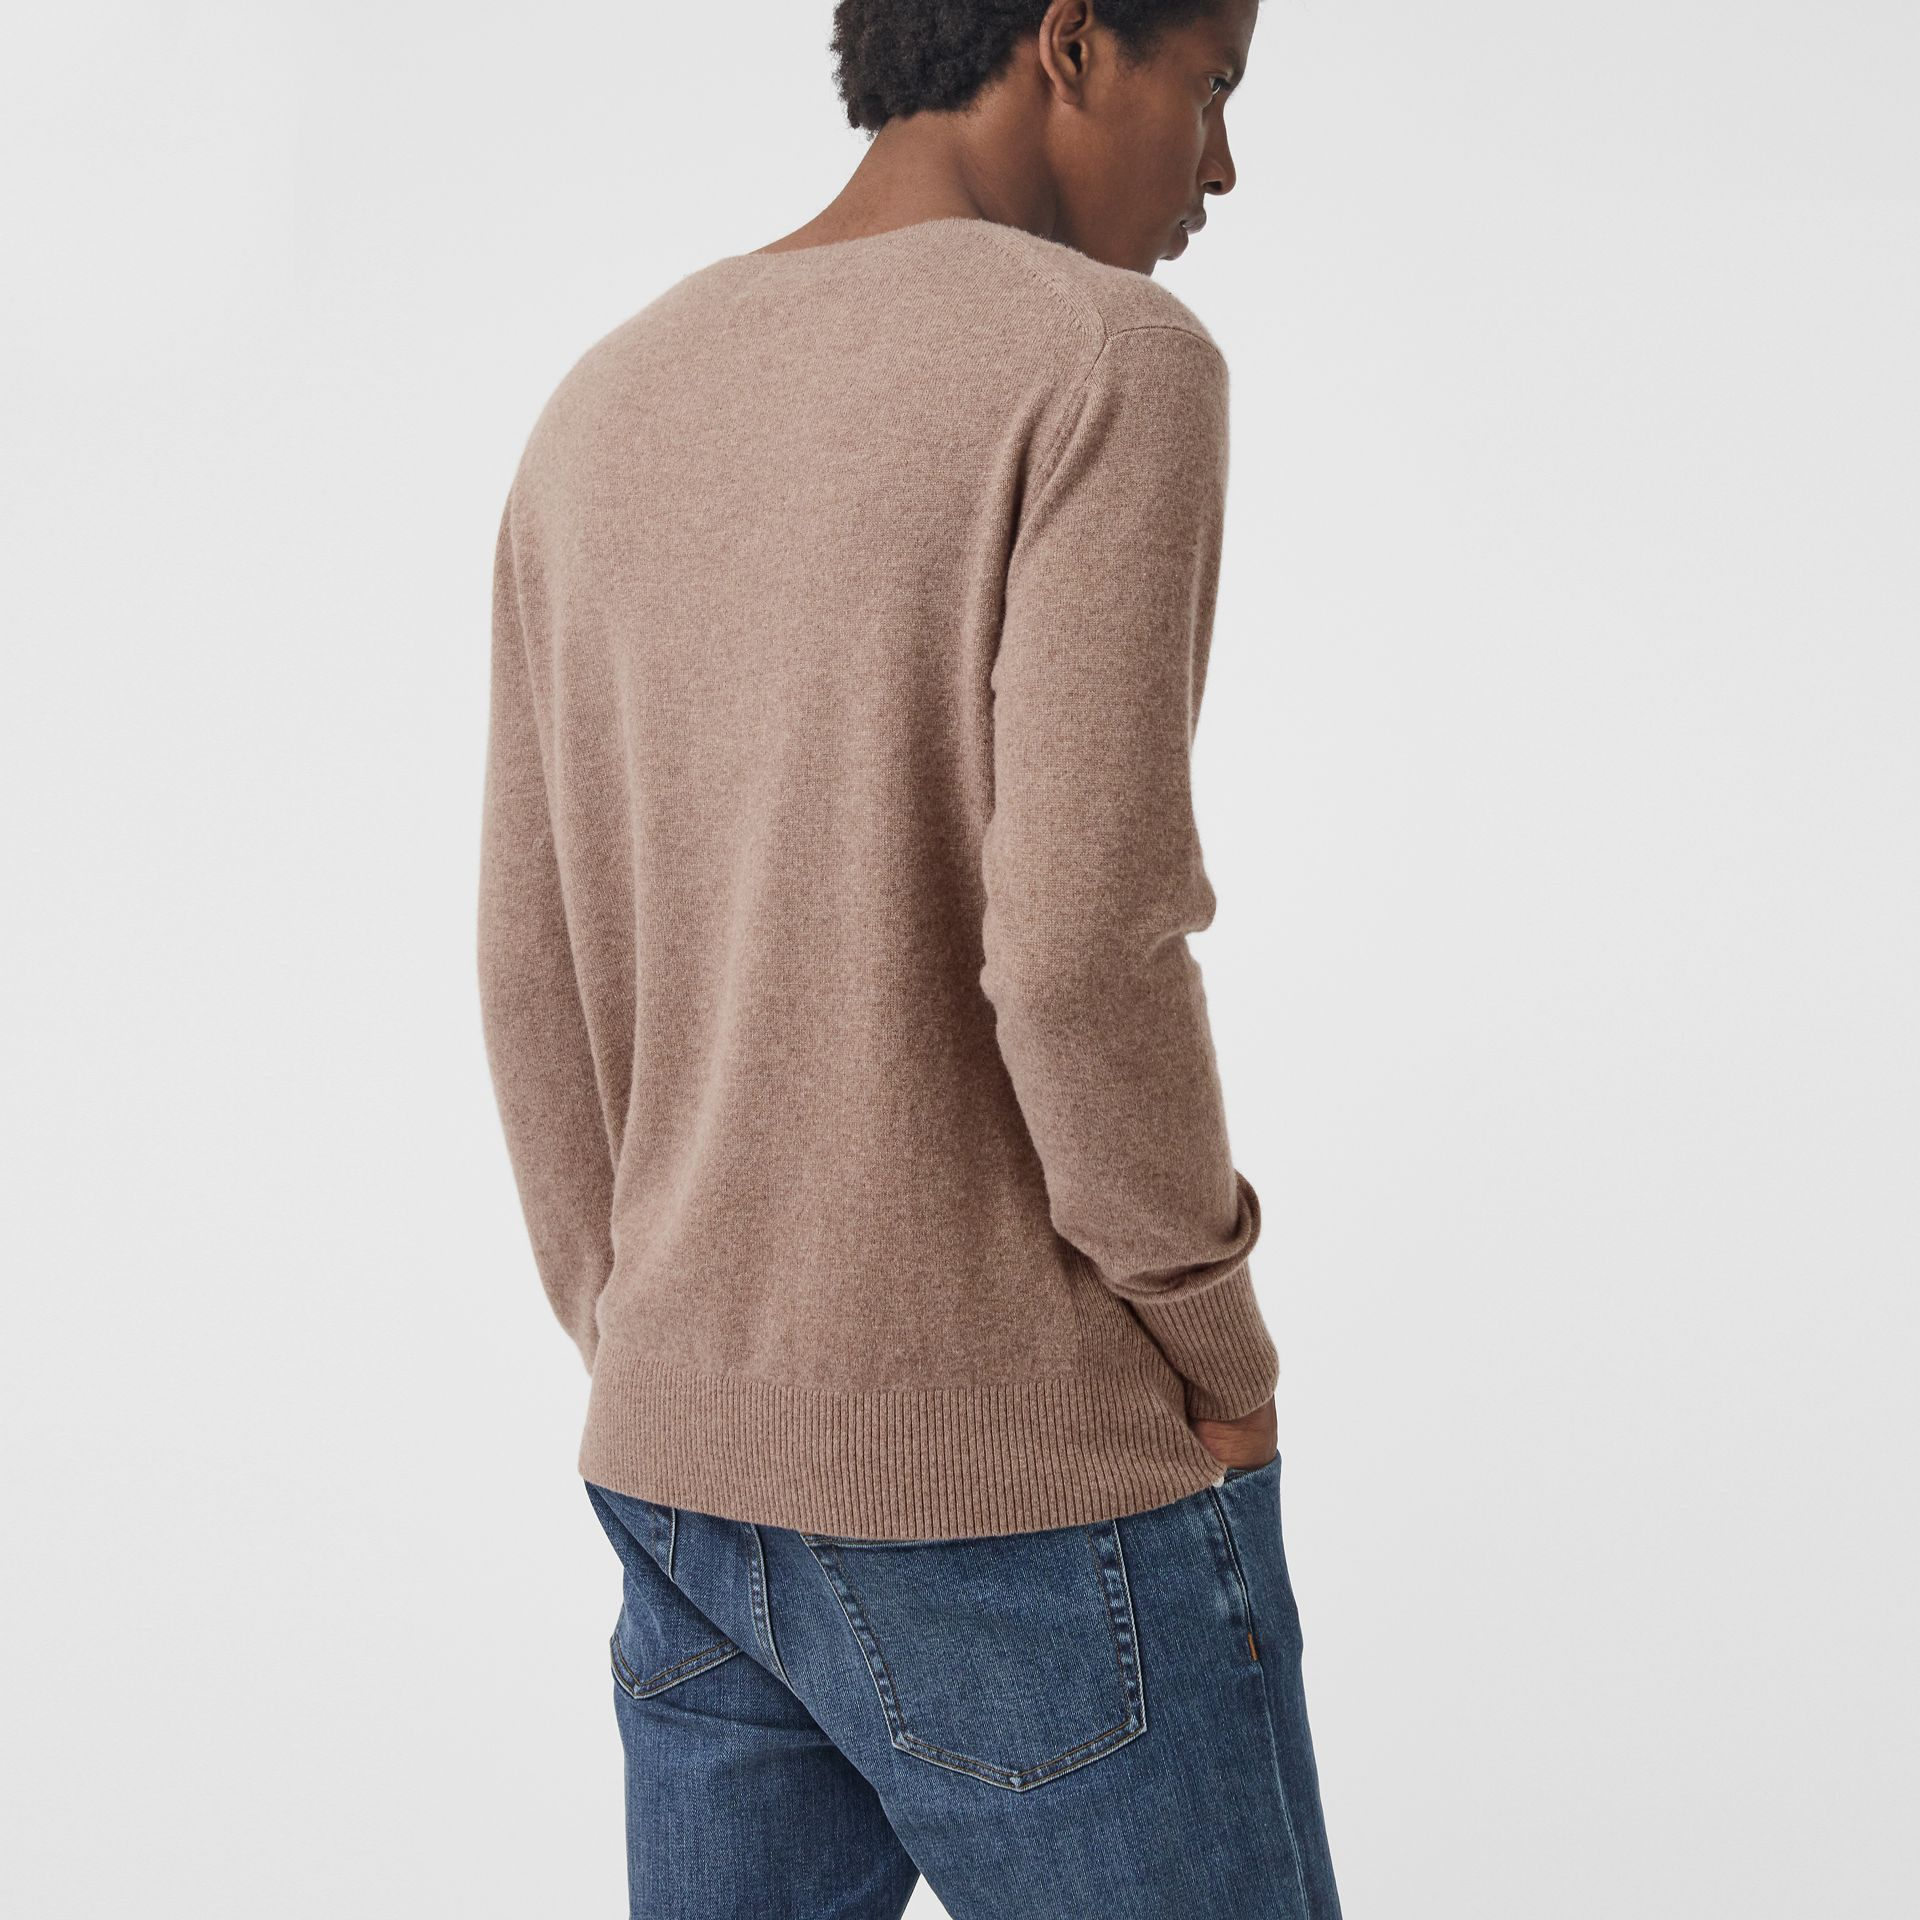 Embroidered Archive Logo Cashmere Sweater in Camel Melange - Men | Burberry Australia - gallery image 2